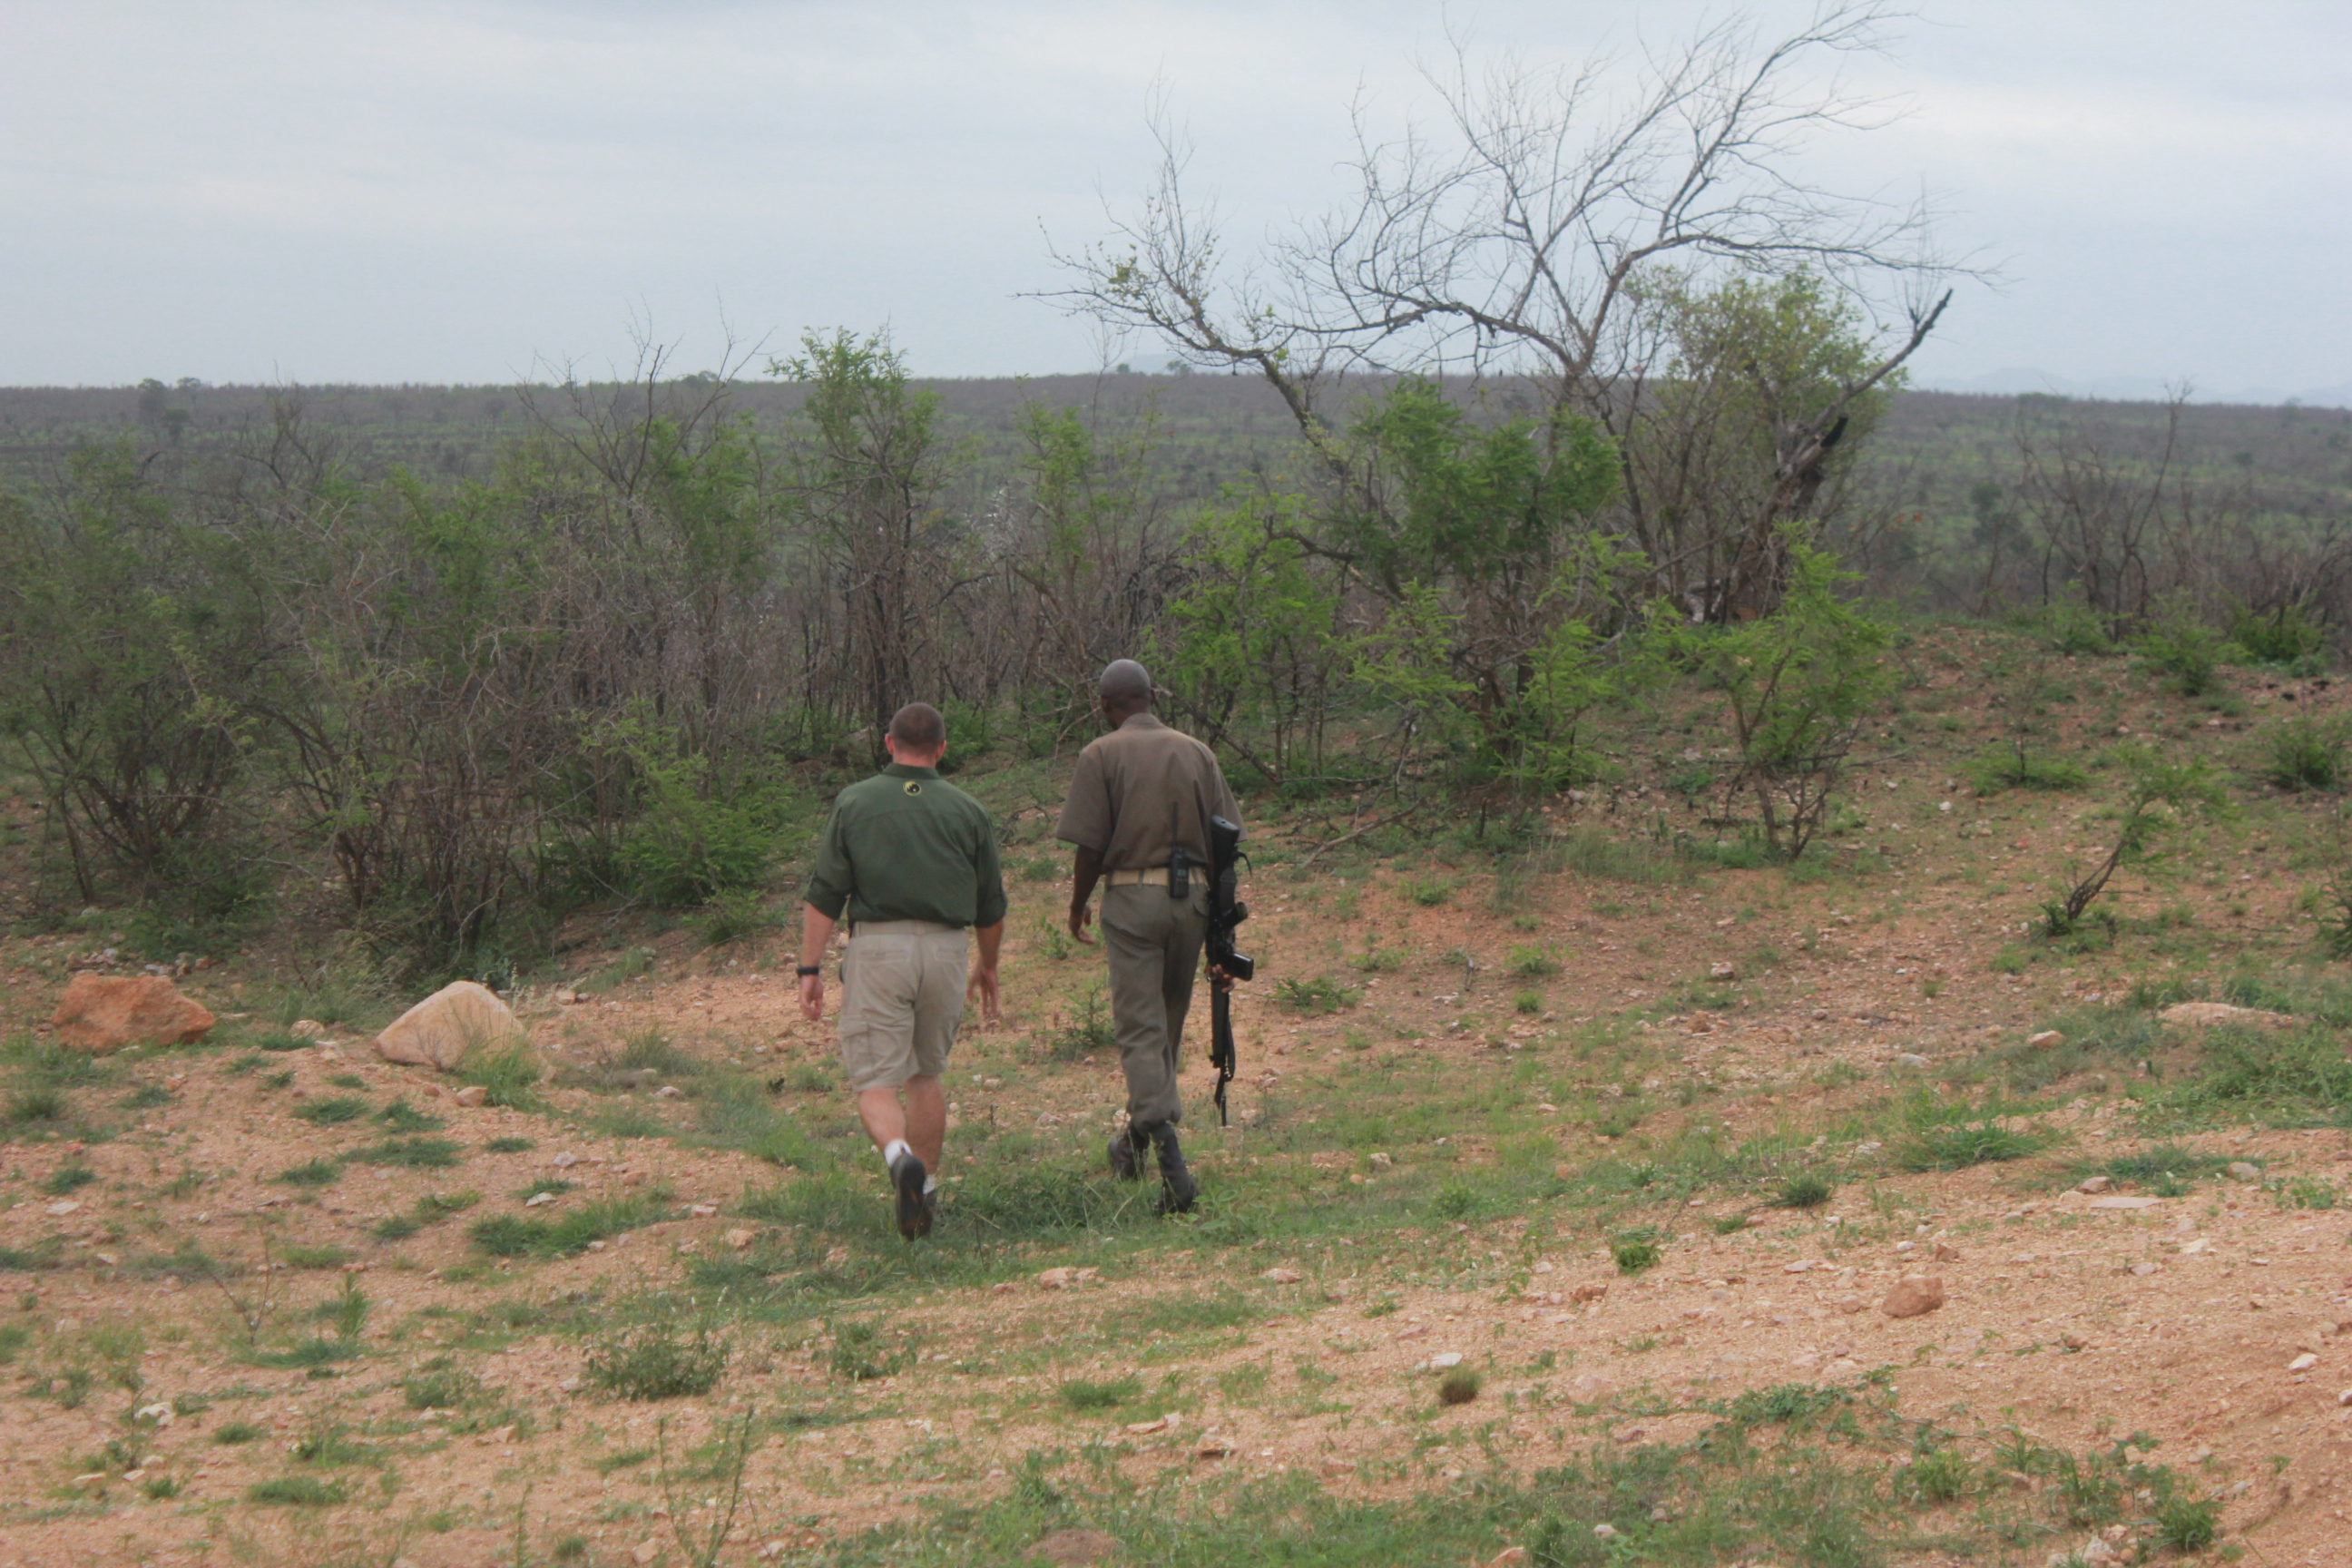 Embedded with rangers